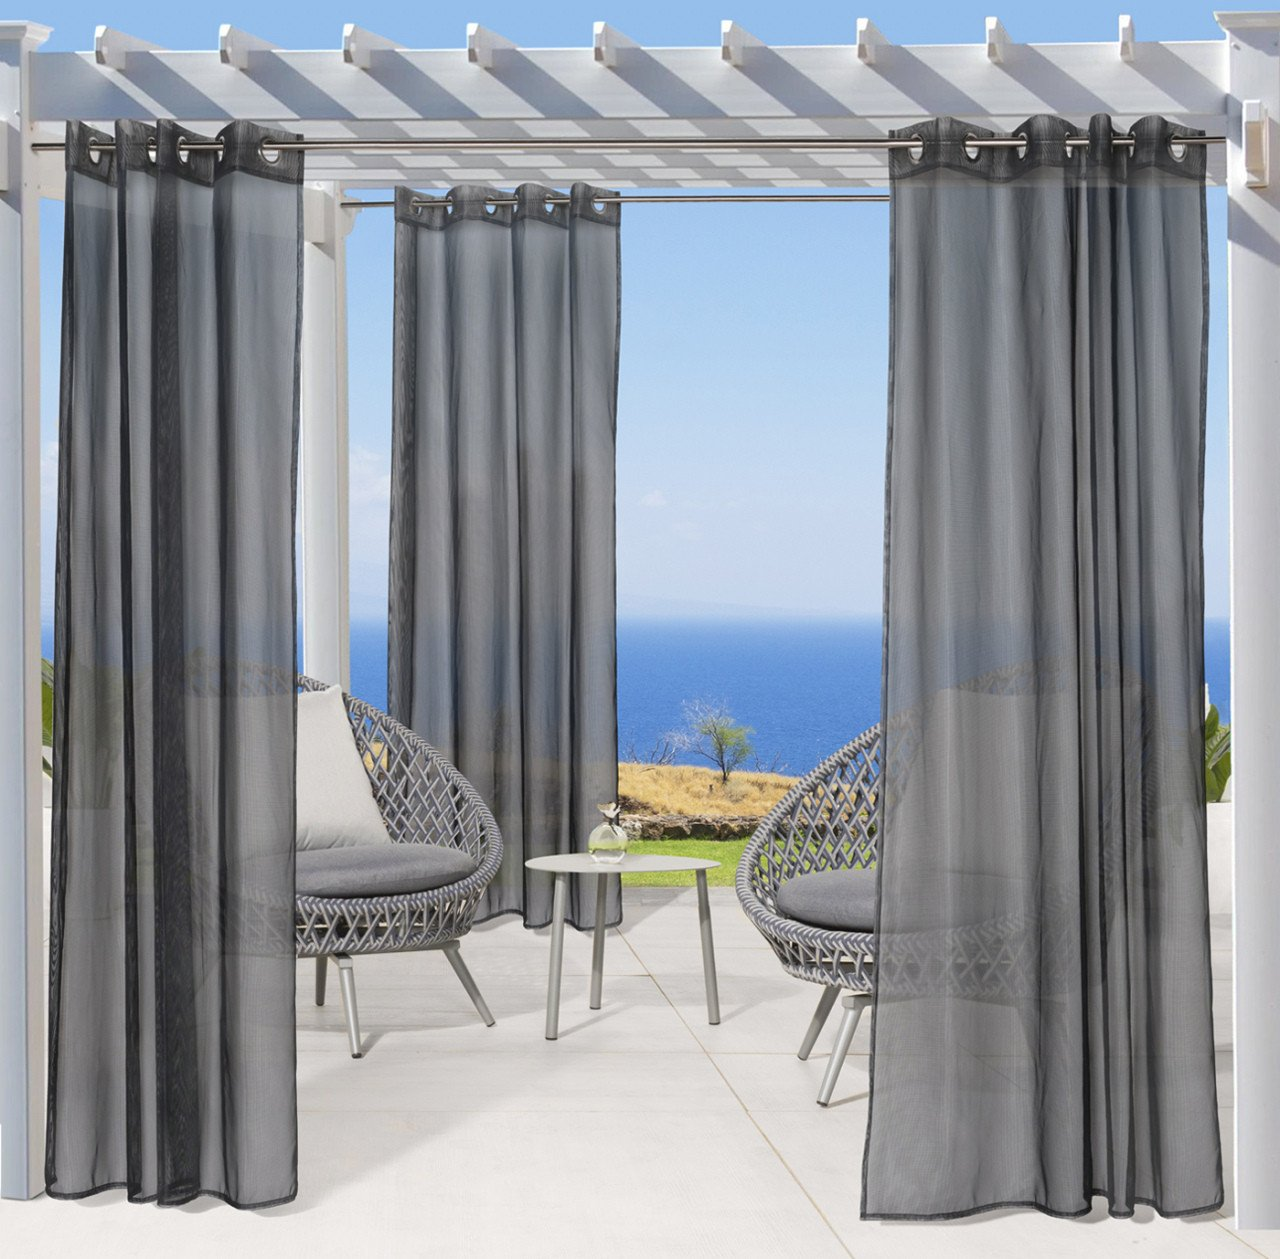 Colorful Curtains for Bedroom Luxury Outside Curtains for Gazebo — Procura Home Blog